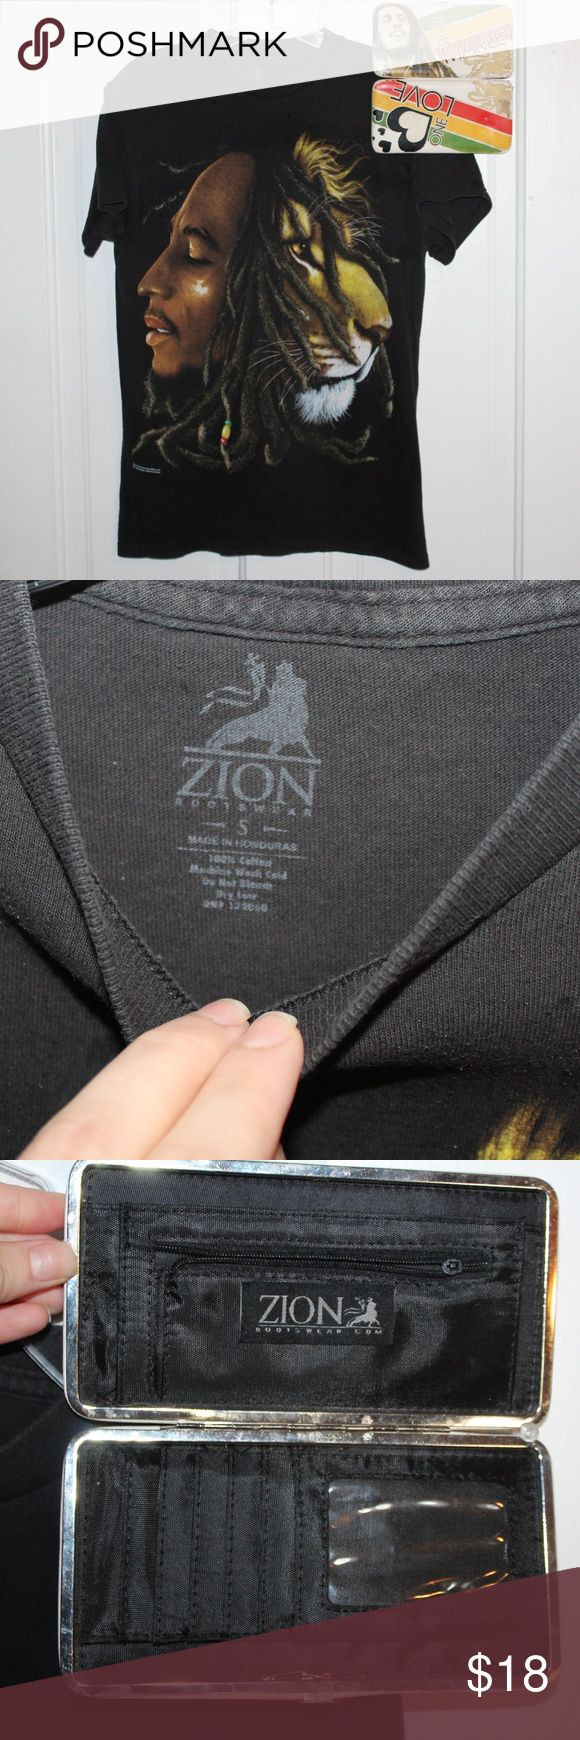 Small Bob Marley Lion Shirt w/ Matching Wallet! Shirt is in great condition- slight fade but good. wallet has a little wear on the outside but GREAT CONDITION on the inside. Zion Tops Tees - Short Sleeve